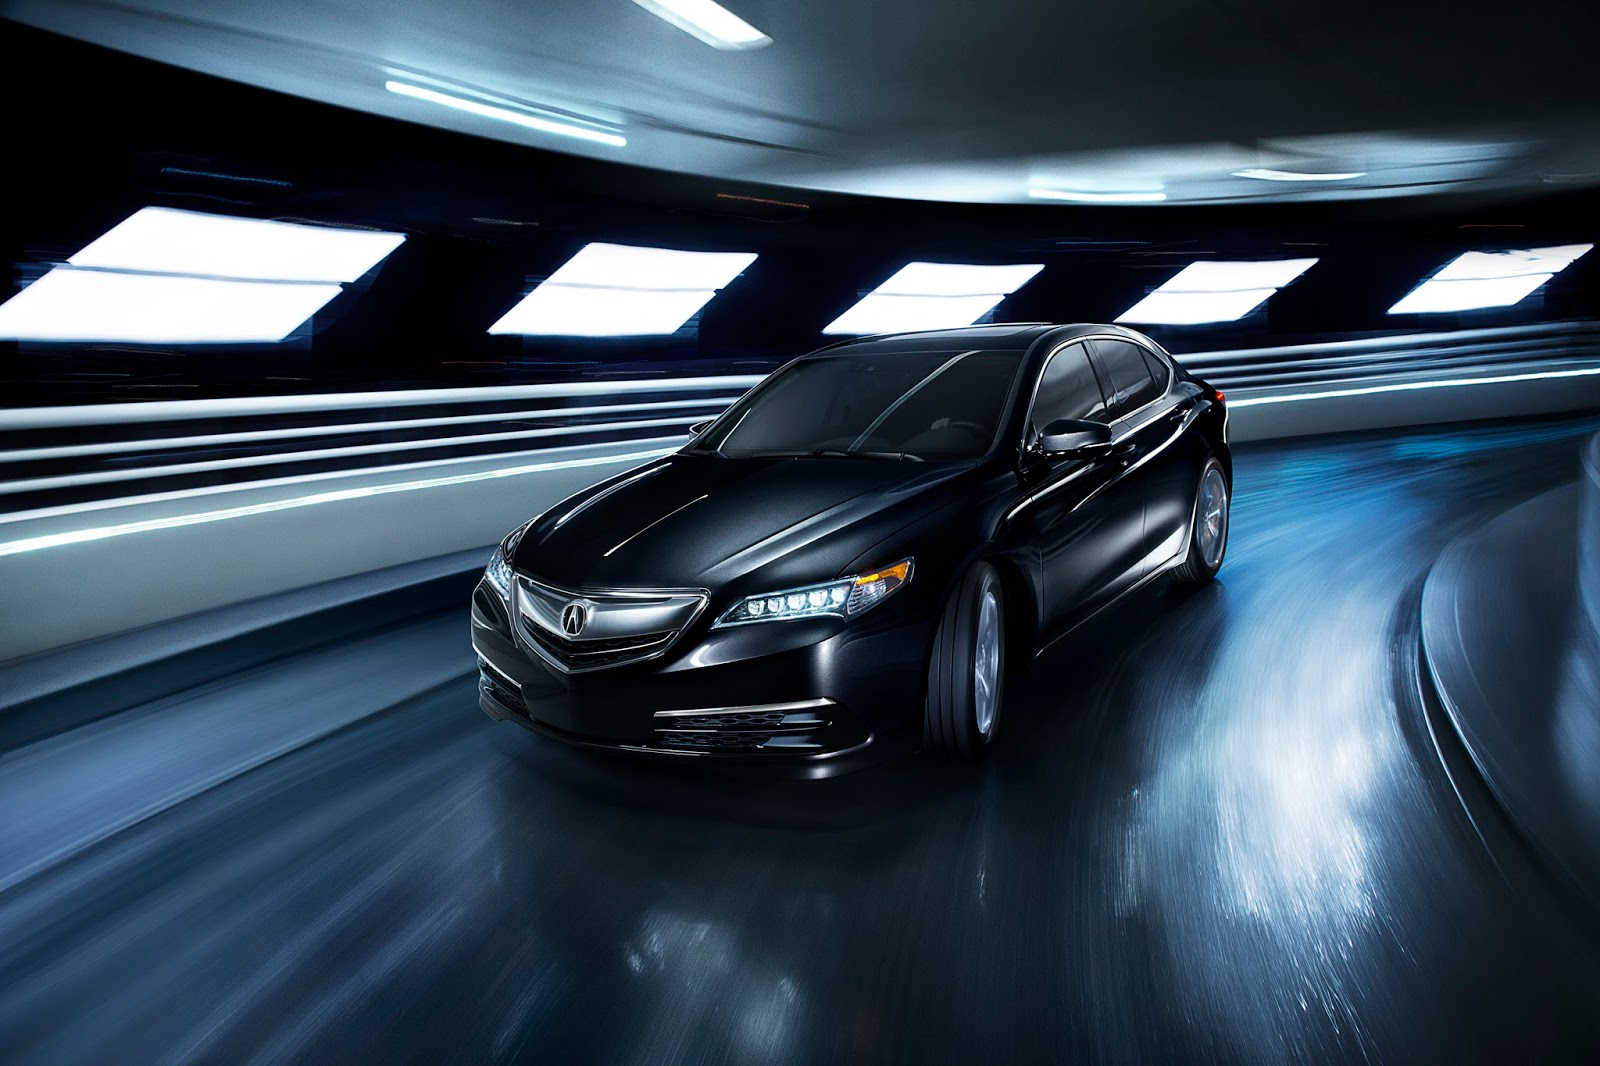 2014 - [Acura] TLX - Page 2 Acura-2015-TLX-25